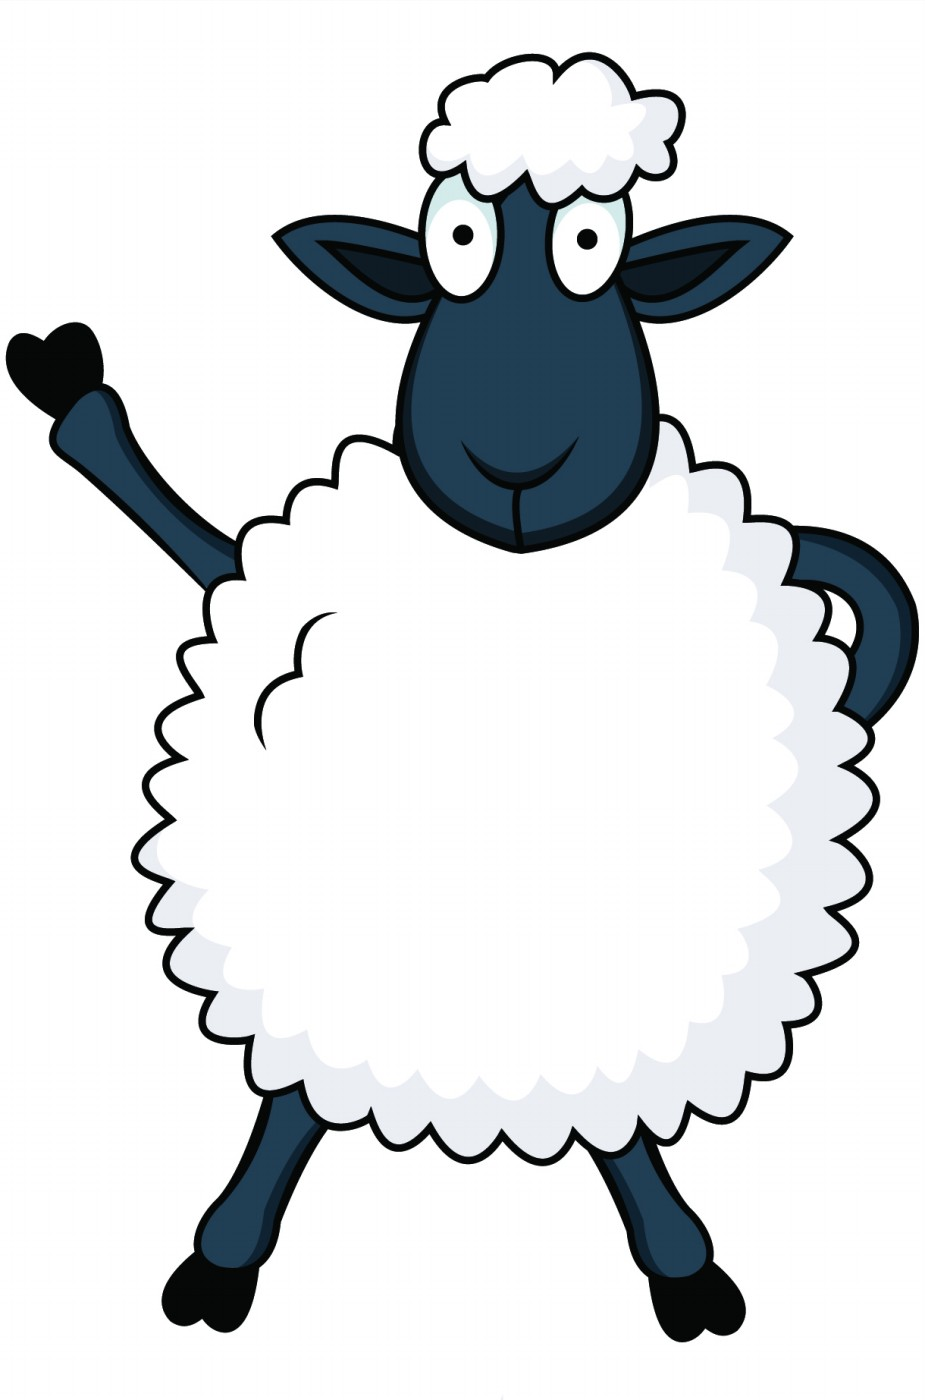 Free Cartoon Sheep Images, Download Free Clip Art, Free Clip.